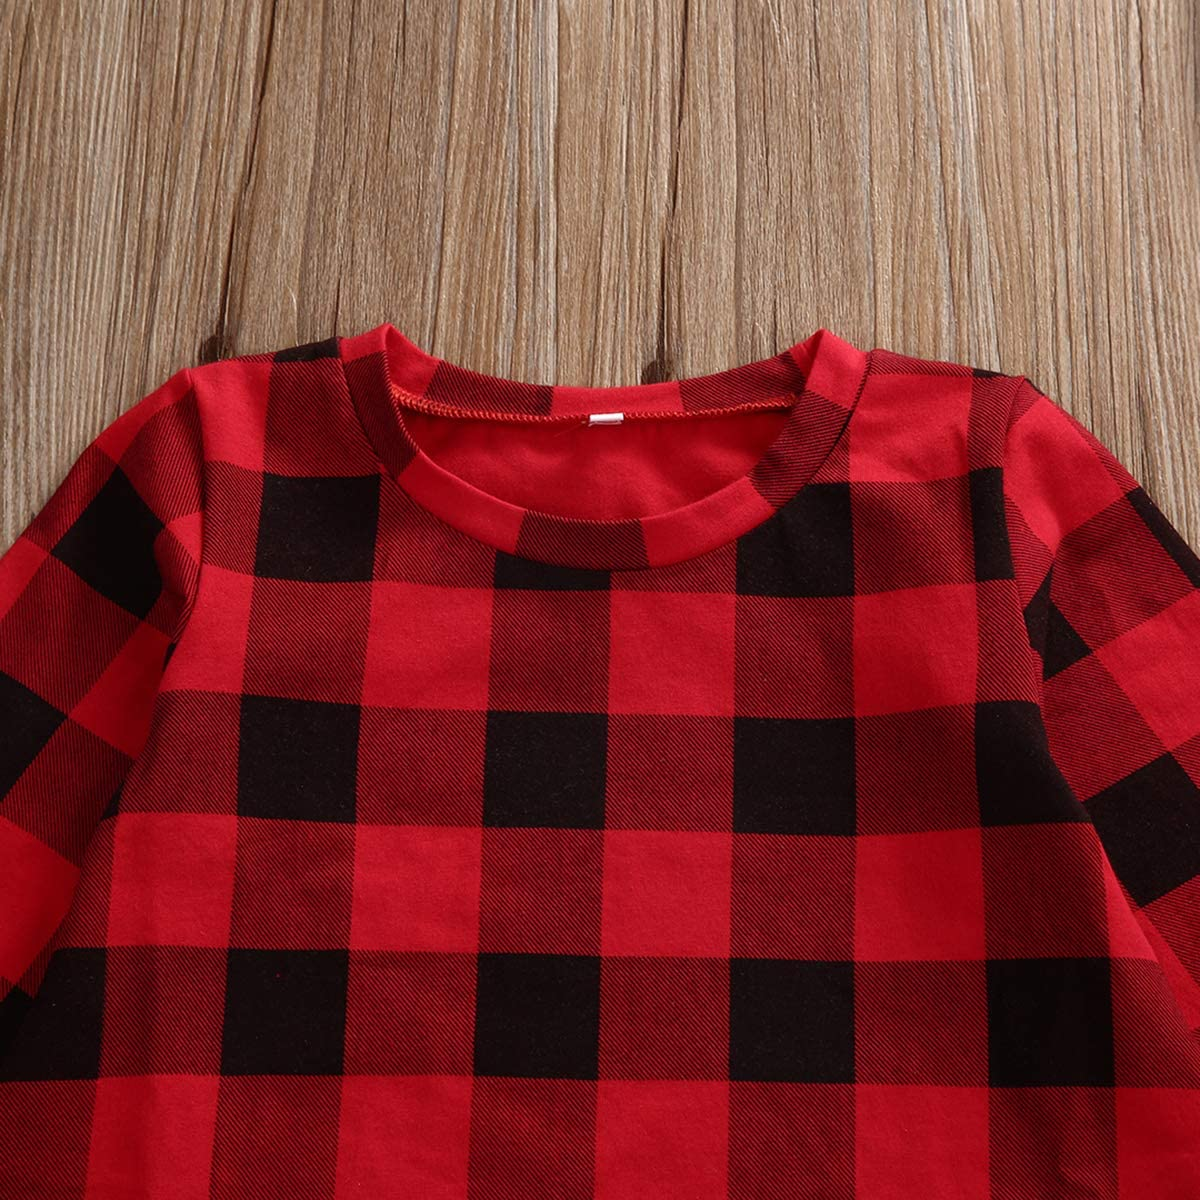 Kayotuas Toddler Kids Baby Girl Plaid Dress Long Sleeve Belted Botton Down Shirts Dresses Infant Fall Outfits